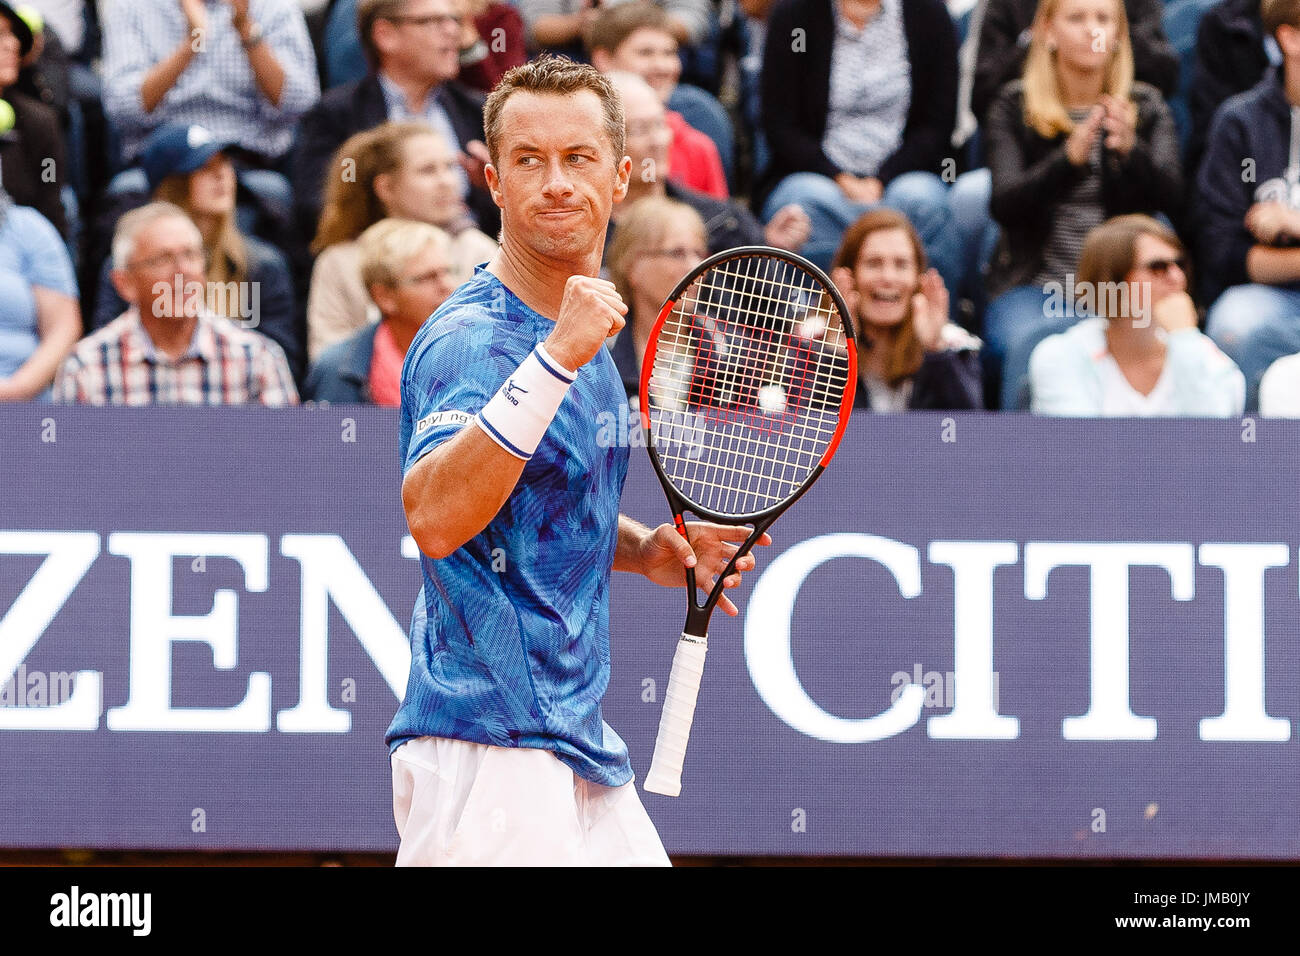 Hamburg, Germany, 27th July 2017: German tennis player Philipp Kohlschreiber in action during his 2nd round victory - Stock Image